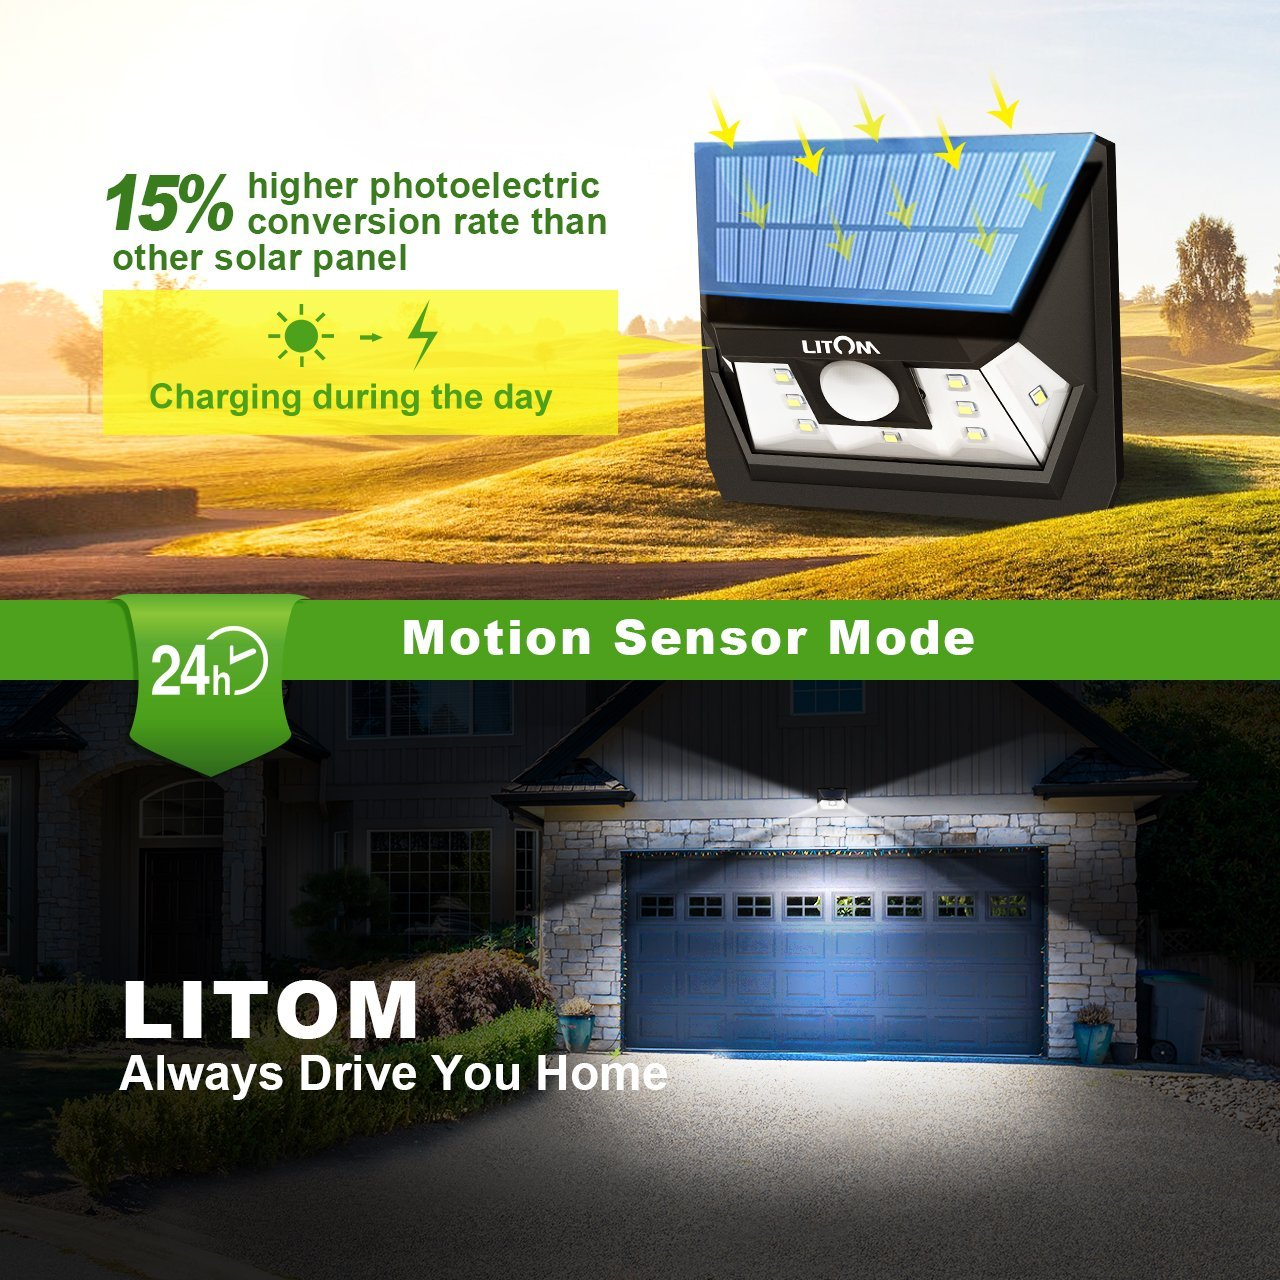 LITOM Solar Lights Outdoor, Wireless LED Solar Motion Sensor Lights with Wide Angle, IP65 Waterproof Security Lights for Front Door Yard Garage Deck Porch Shed Walkway Fence (4 Pack) by Litom (Image #5)